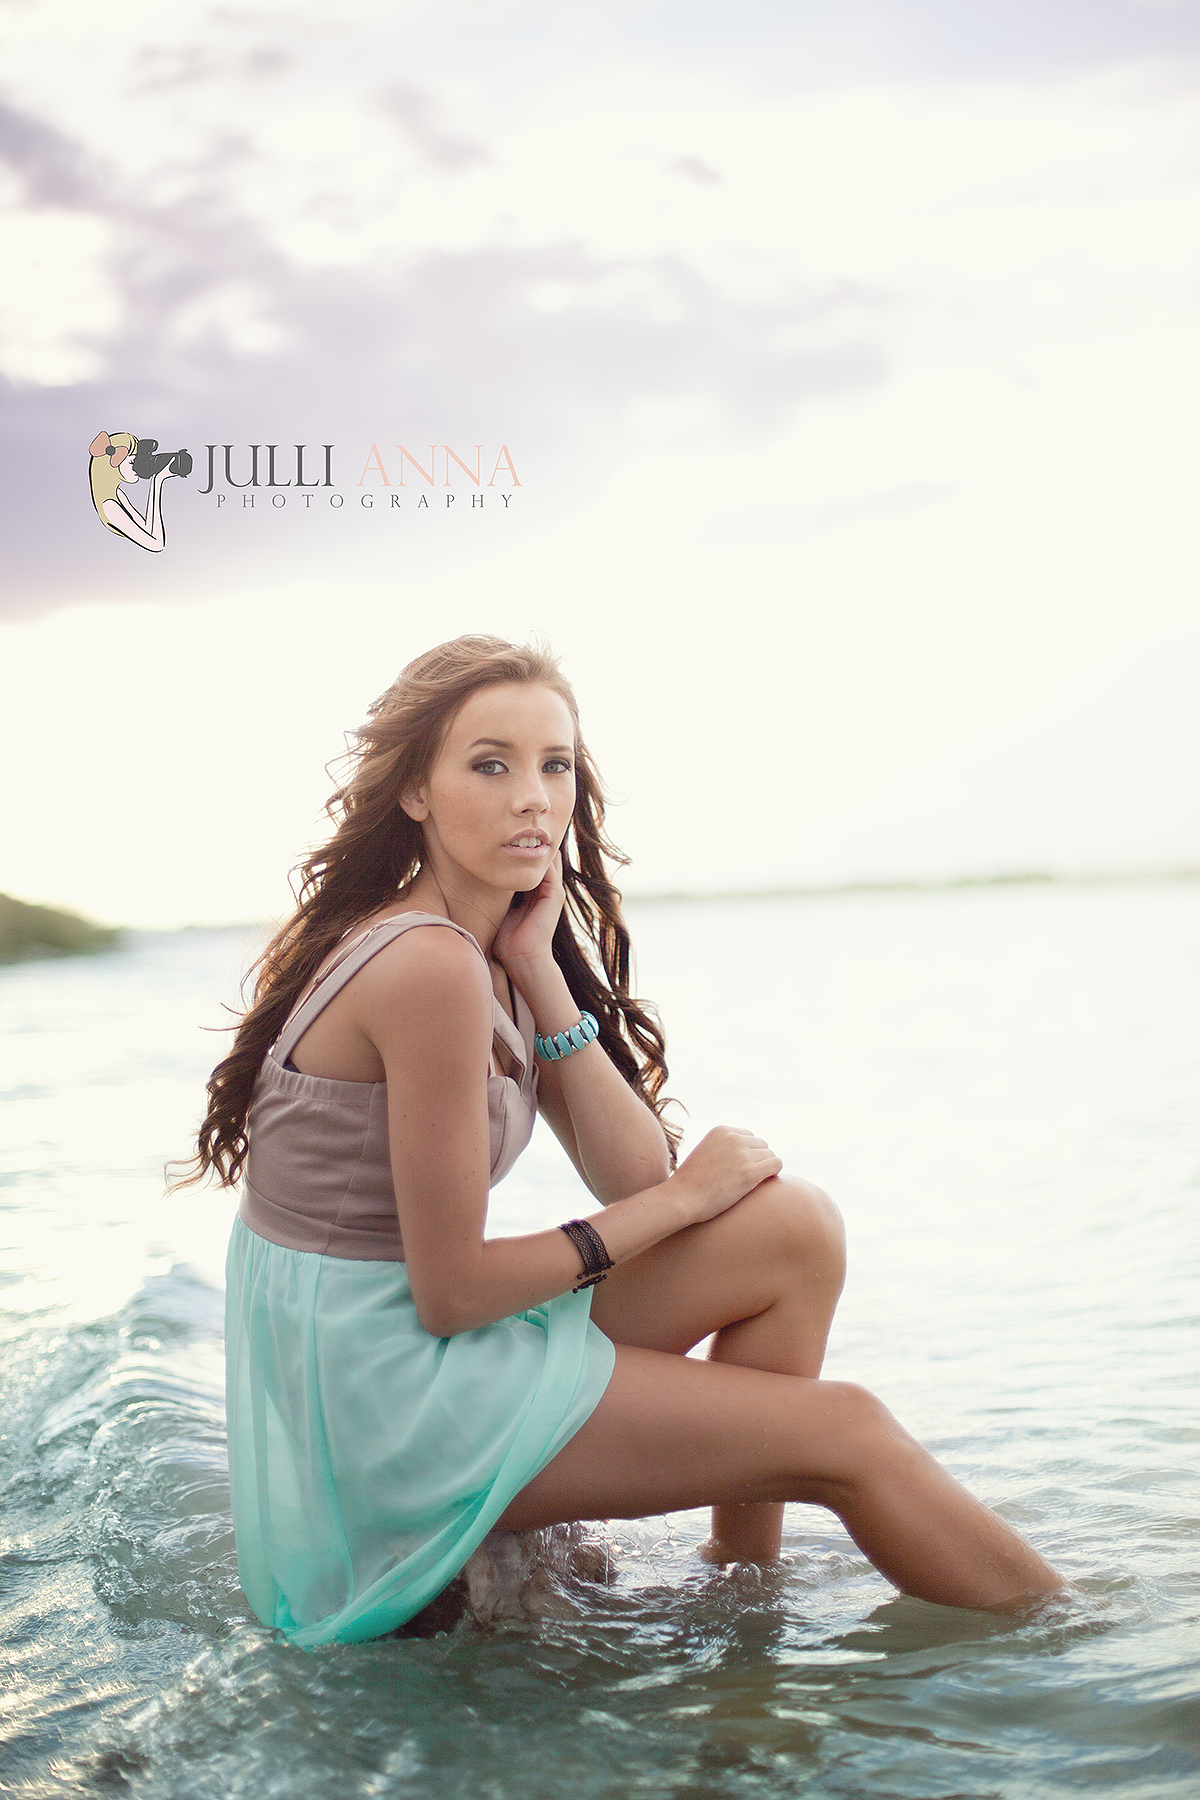 Julli Anna photography Senior girl photography | Photo | Pinterest